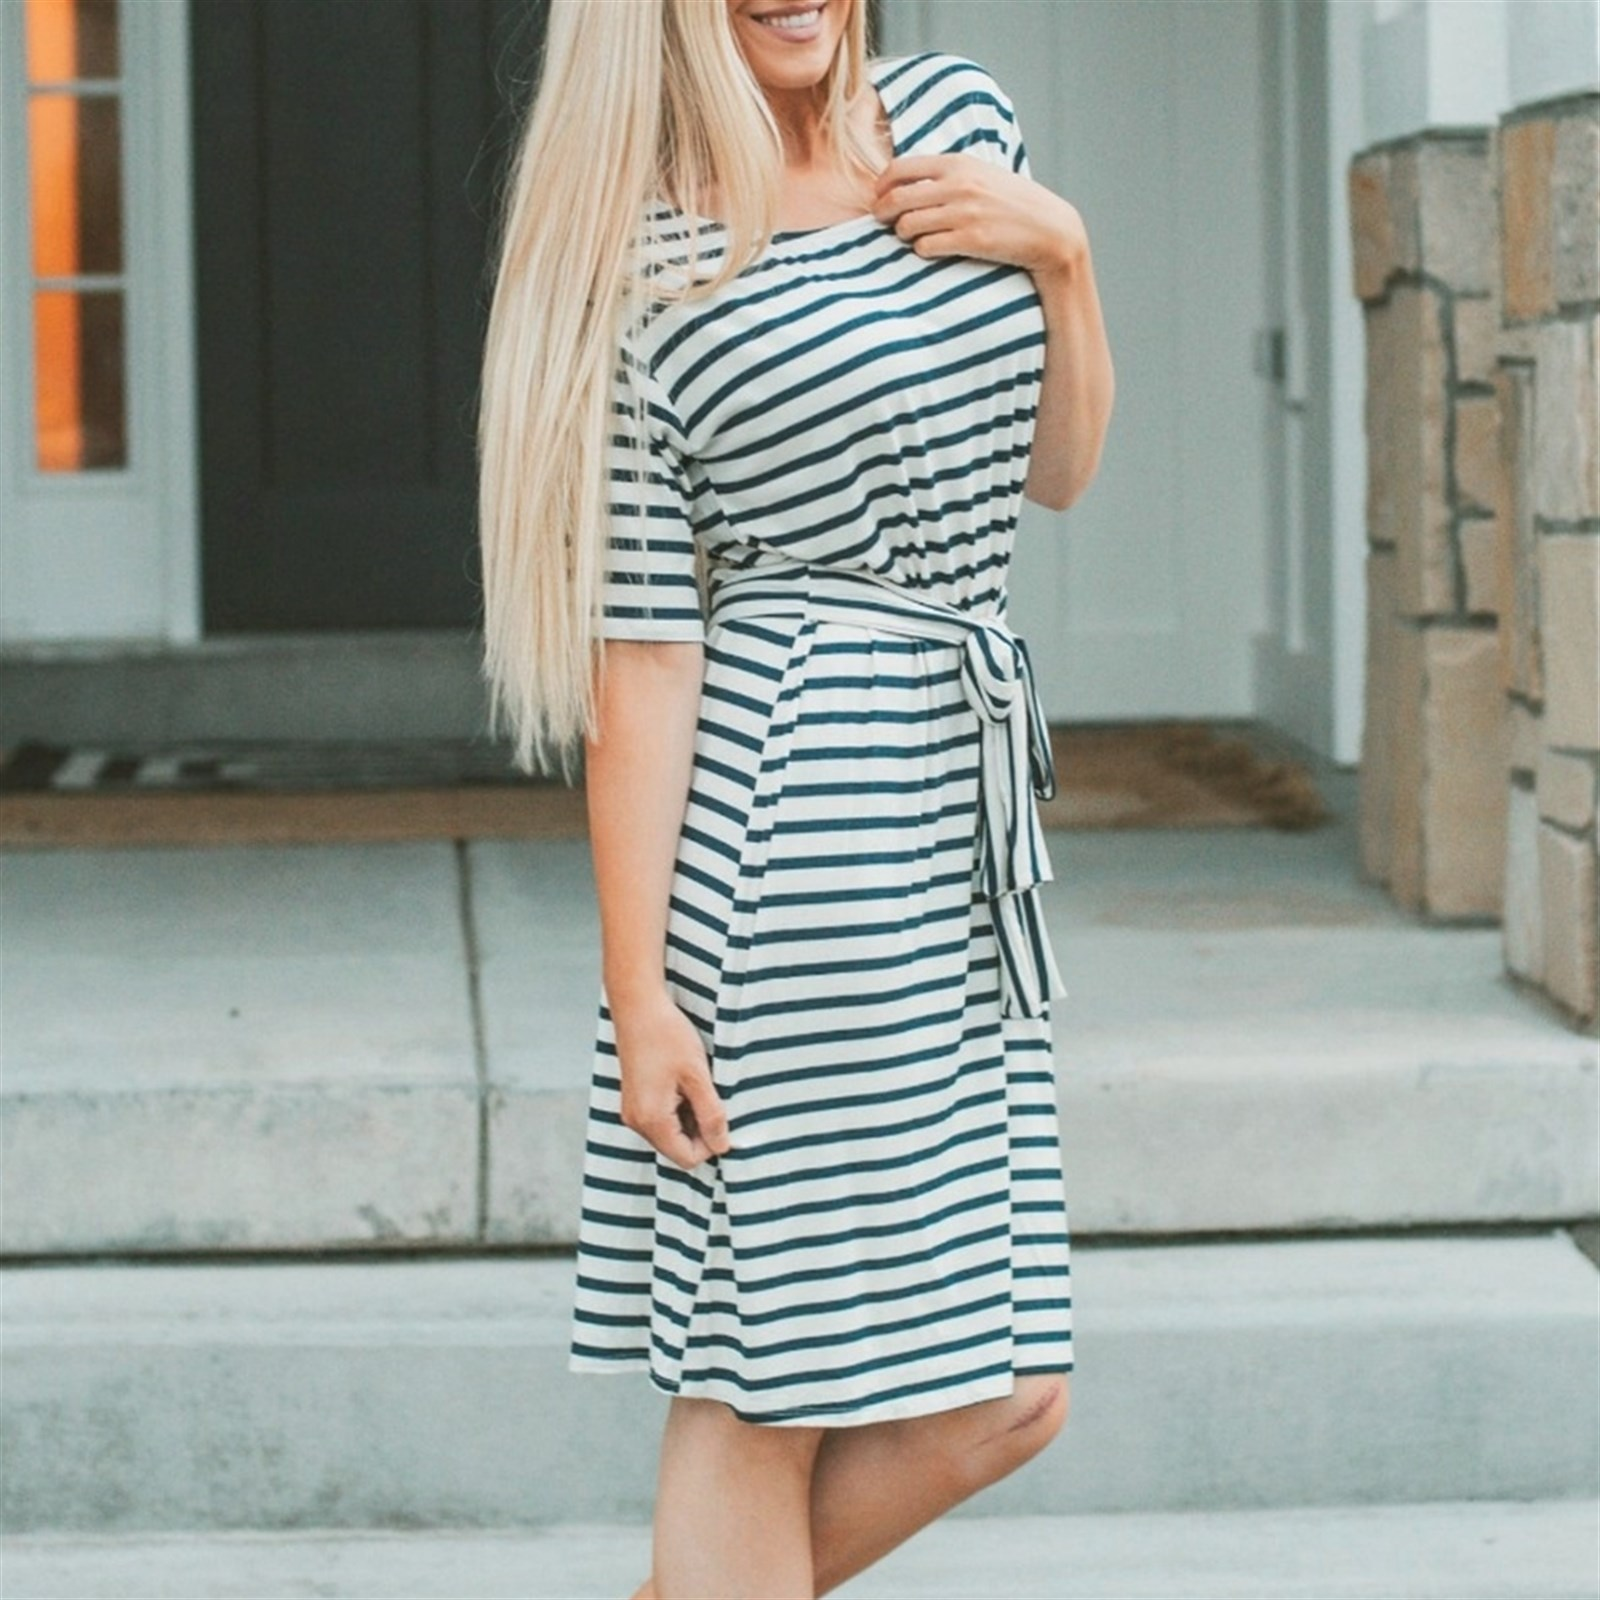 Spring Dress Collection Only $16.99 w/ Free Shipping